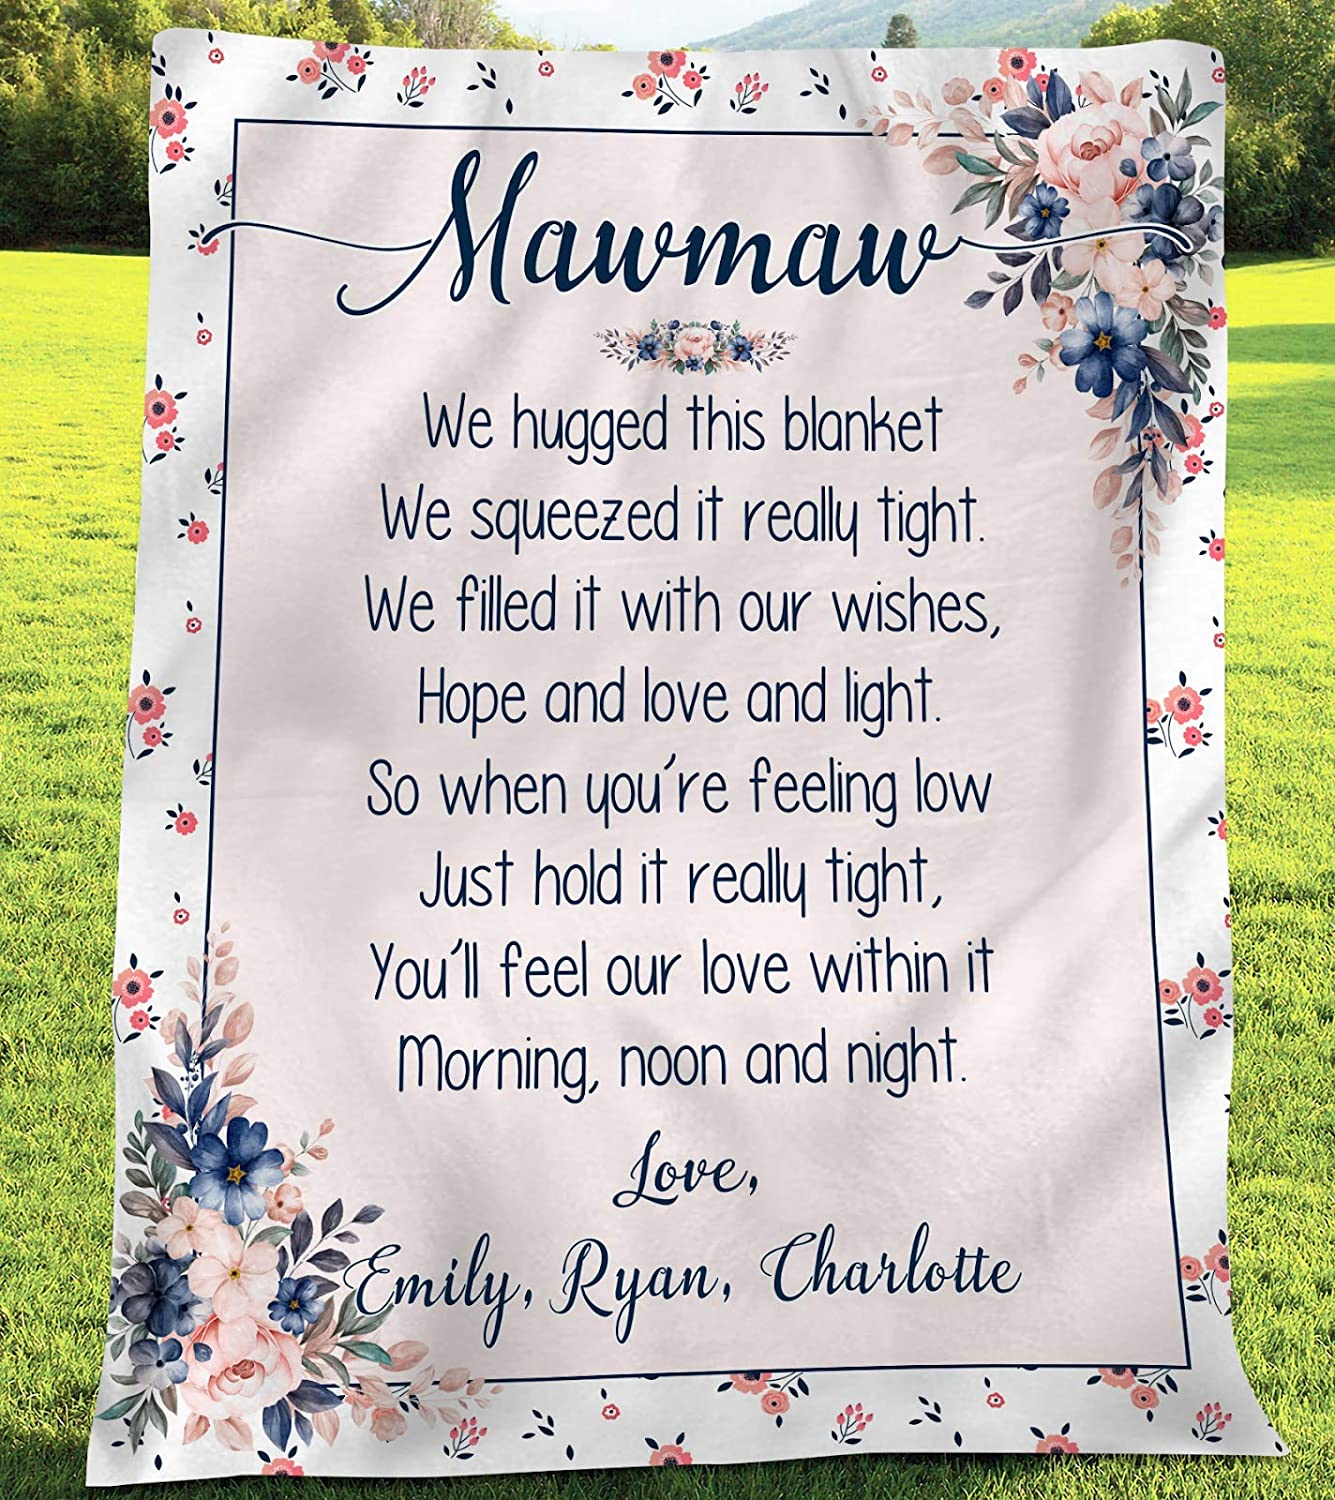 Personalized Blanket- Mawmaw Blanket Ranking Jacksonville Mall TOP17 This Gran We Hug